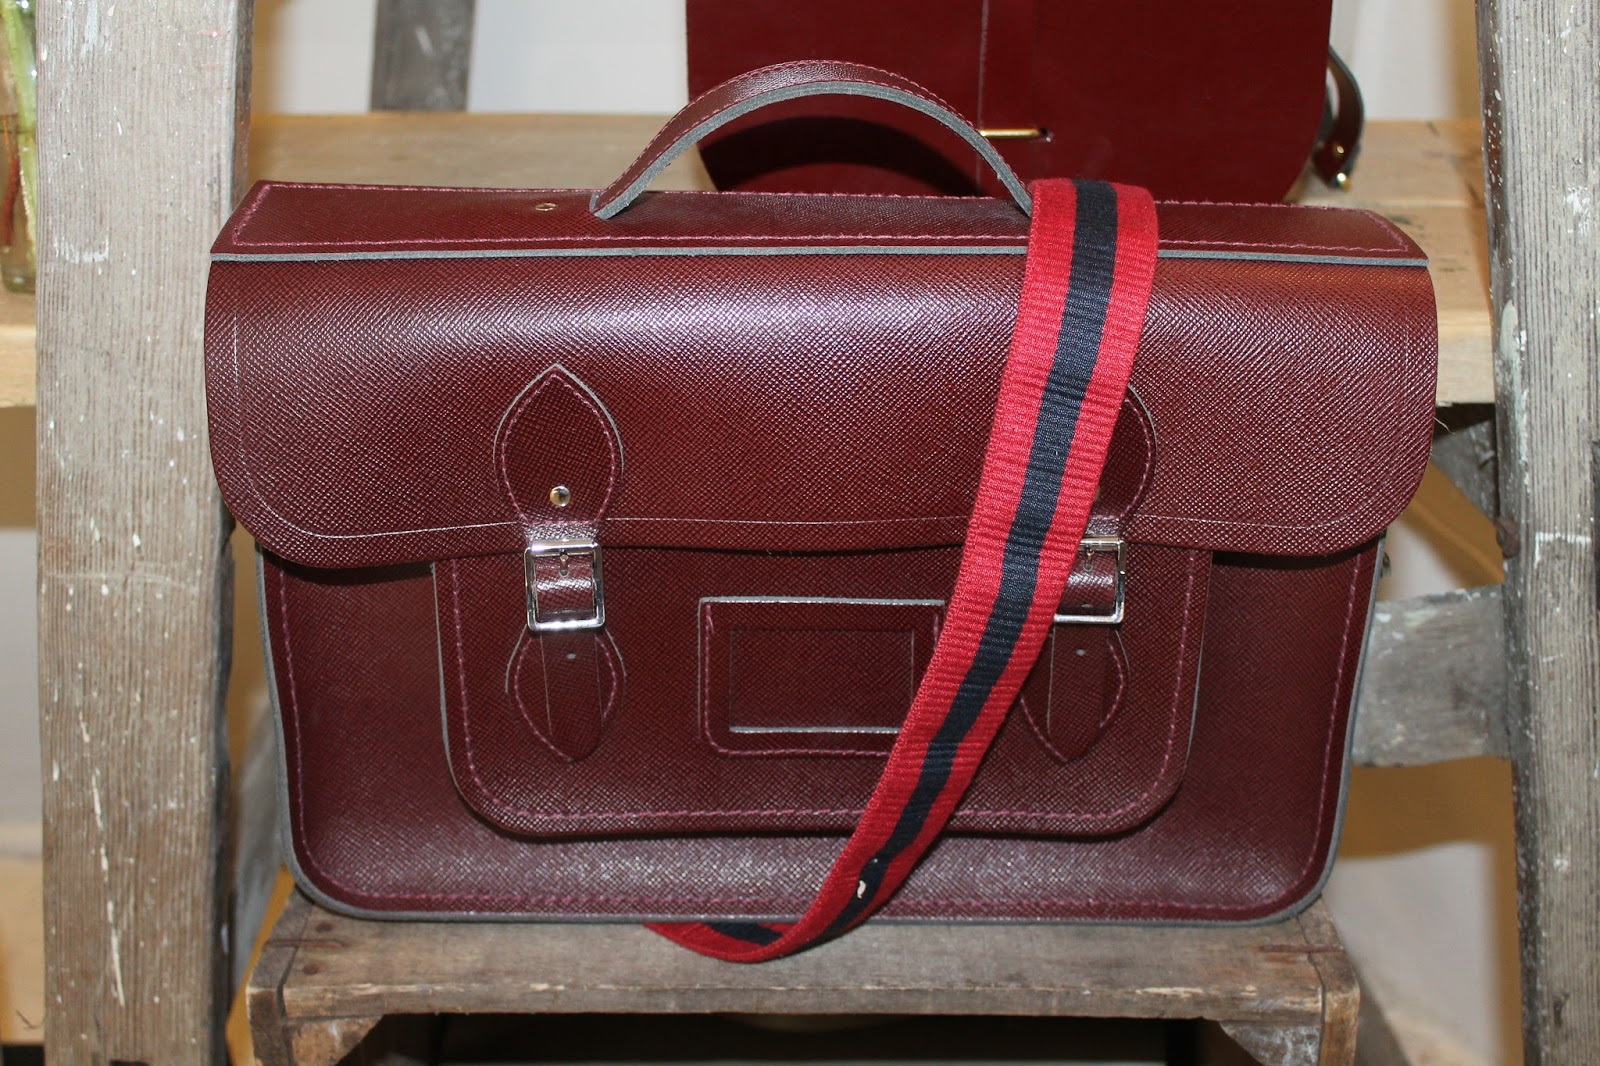 f06edfec69f *In Store* I love the classic design of The Cambridge Satchel Company bags.  They are exactly like my school bag when I was at primary school.